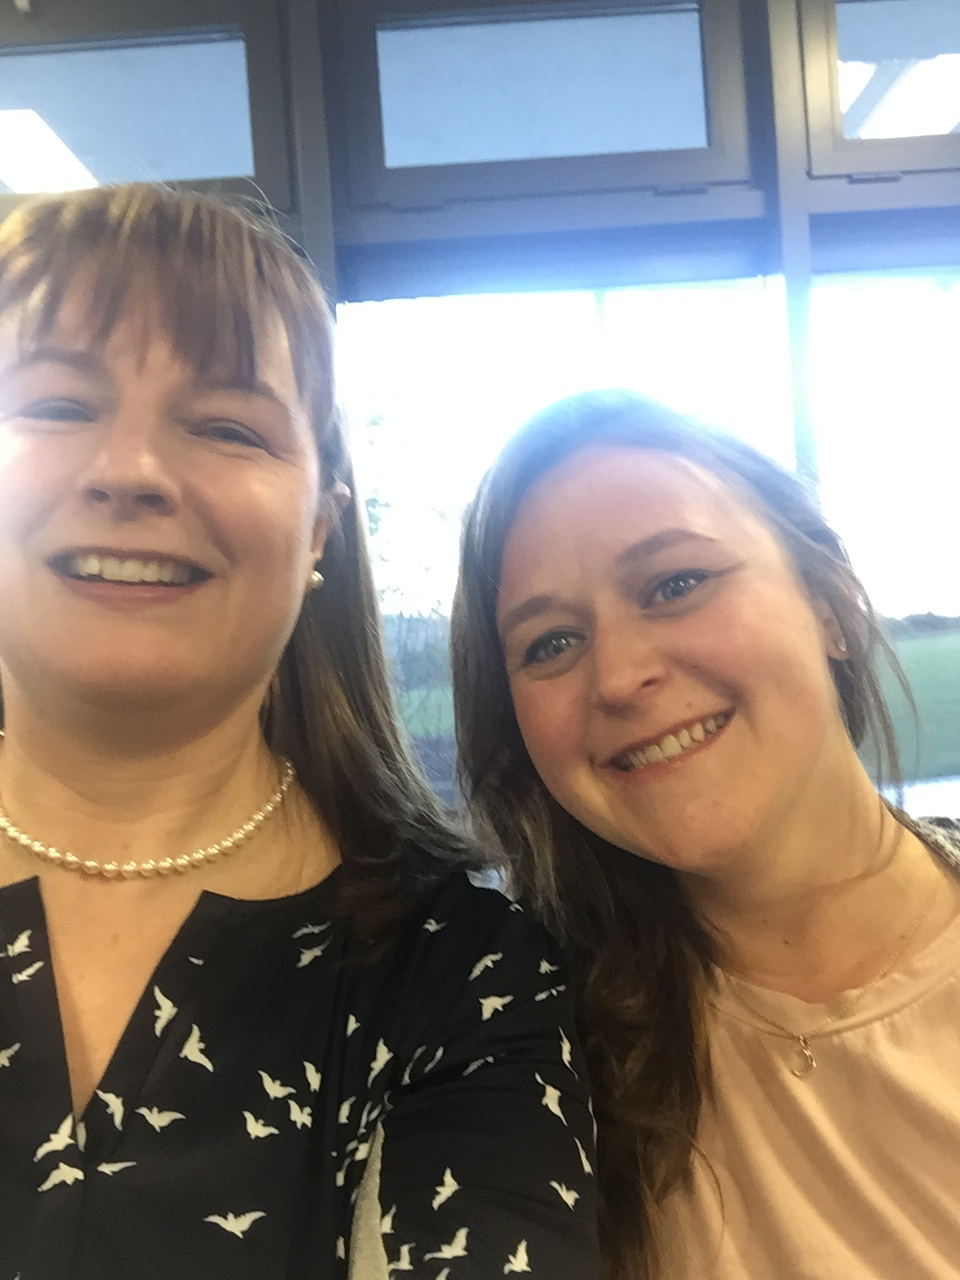 Me and Roisin at Diabetes Ireland's head office in 2017